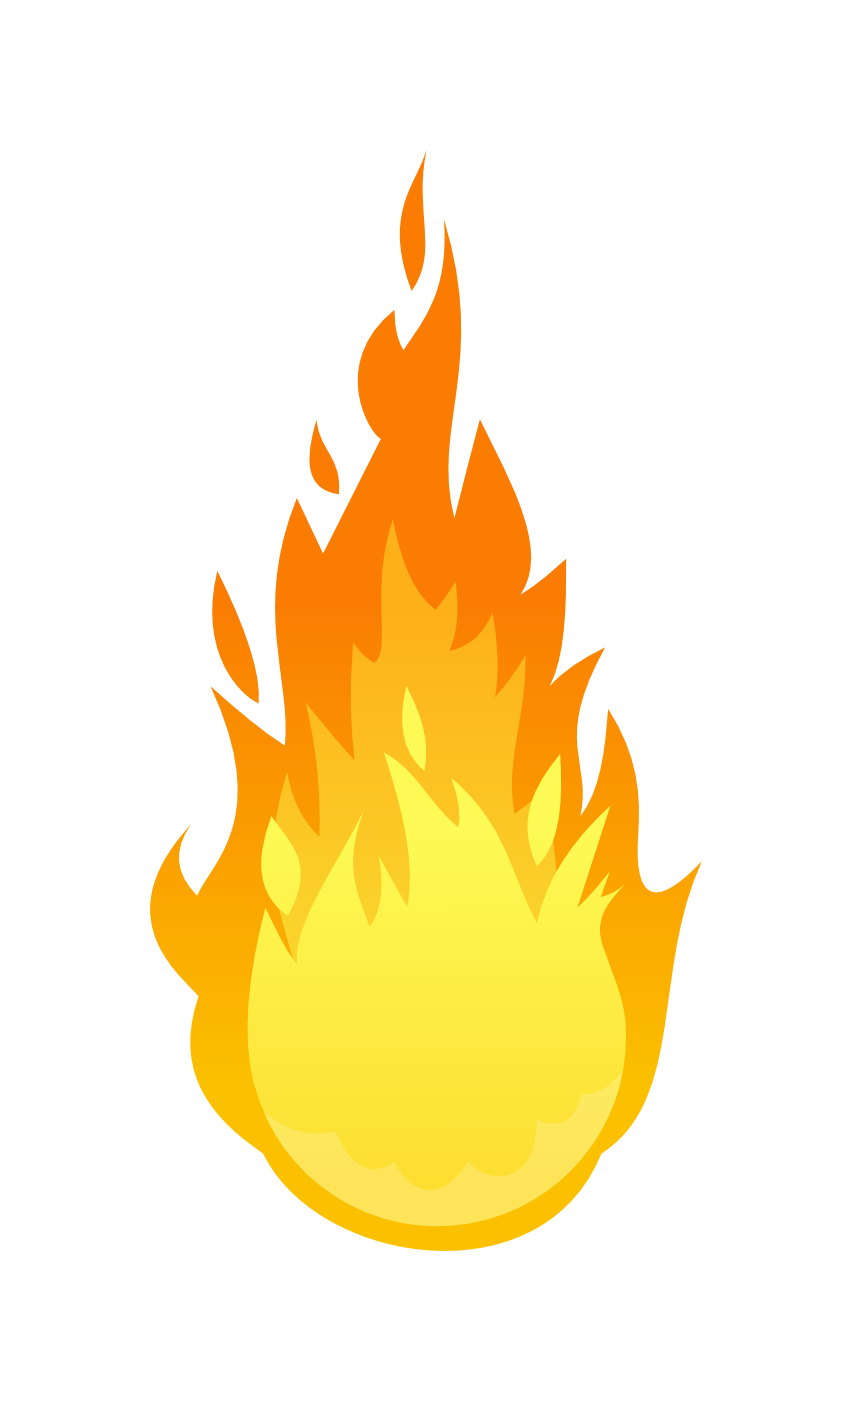 Frame clipart fire. Stunning ideas printable adult